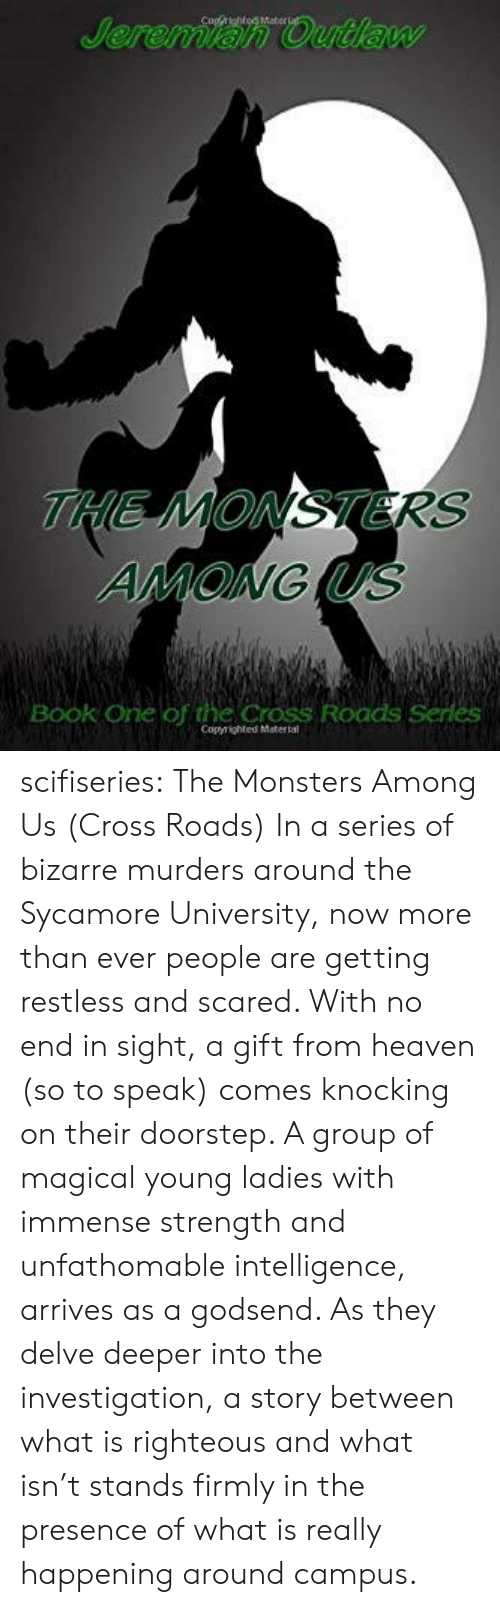 monsters: Jeremian Outlaw  THE MONSTERS  AMONG US  Book One of the Cross Roads Series  Copyrighted Matertal scifiseries:  The Monsters Among Us (Cross Roads)  In a series of bizarre murders around  the Sycamore University, now more than ever people are getting restless  and scared. With no end in sight, a gift from heaven (so to speak)  comes knocking on their doorstep. A group of magical young ladies with  immense strength and unfathomable intelligence, arrives as a godsend. As  they delve deeper into the investigation, a story between what is  righteous and what isn't stands firmly in the presence of what is really  happening around campus.